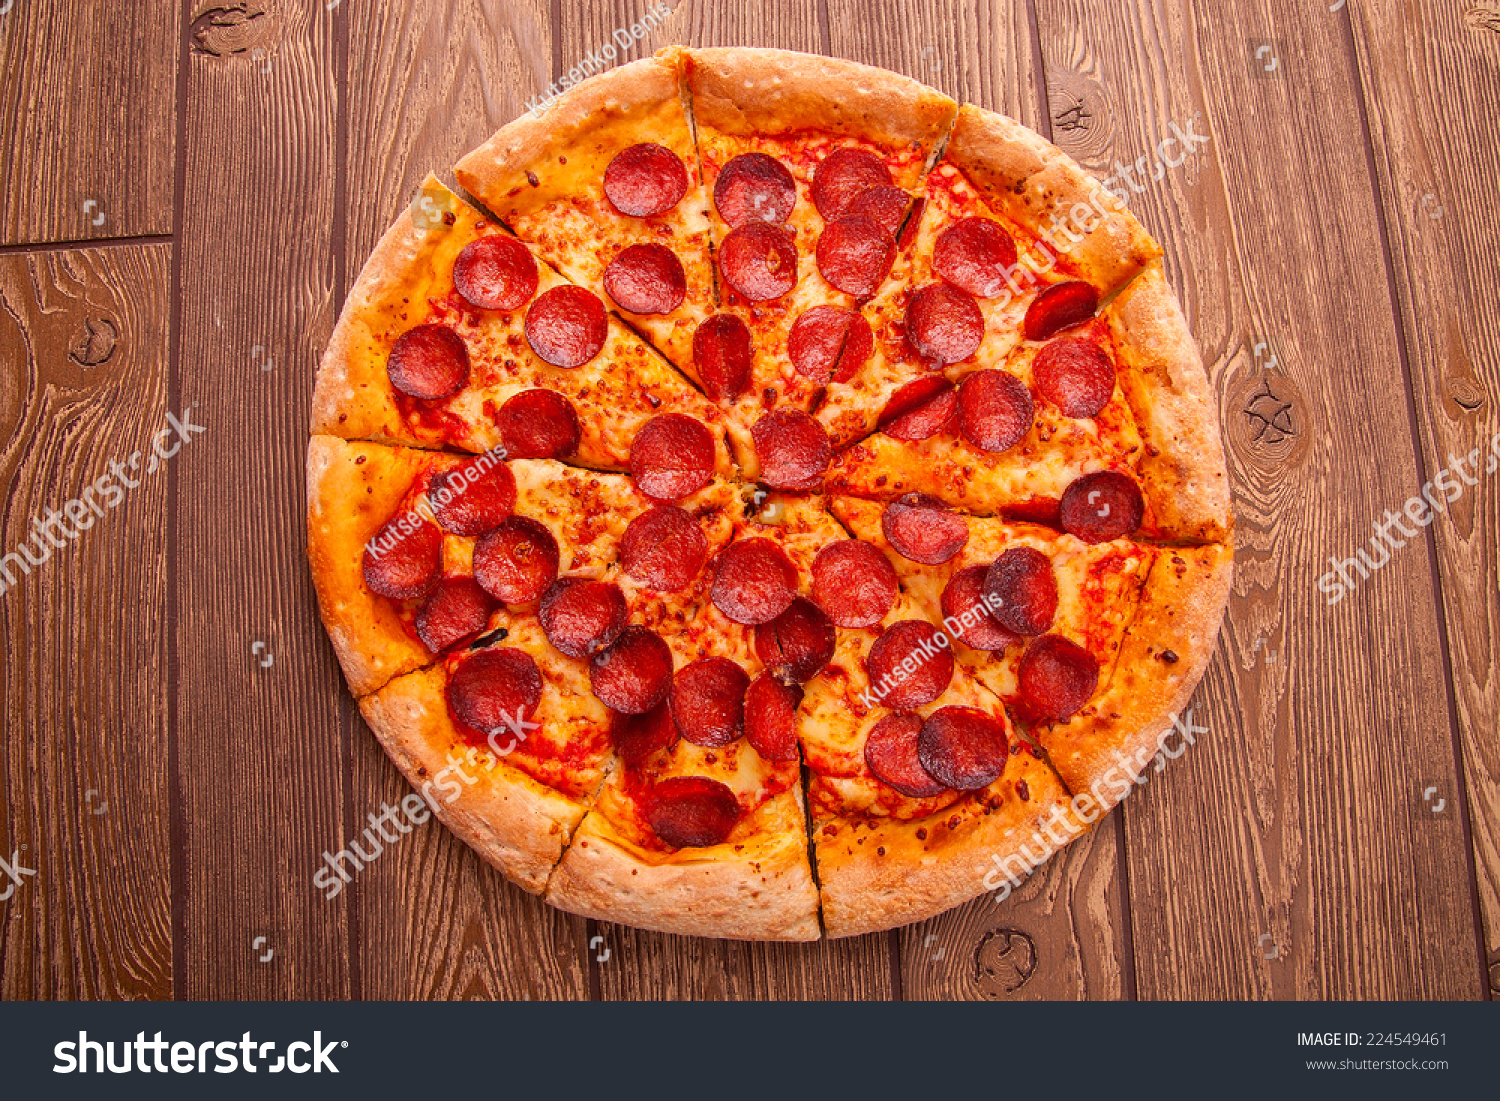 Pizza on wooden table stock photo 224549461 shutterstock for Table a pizza